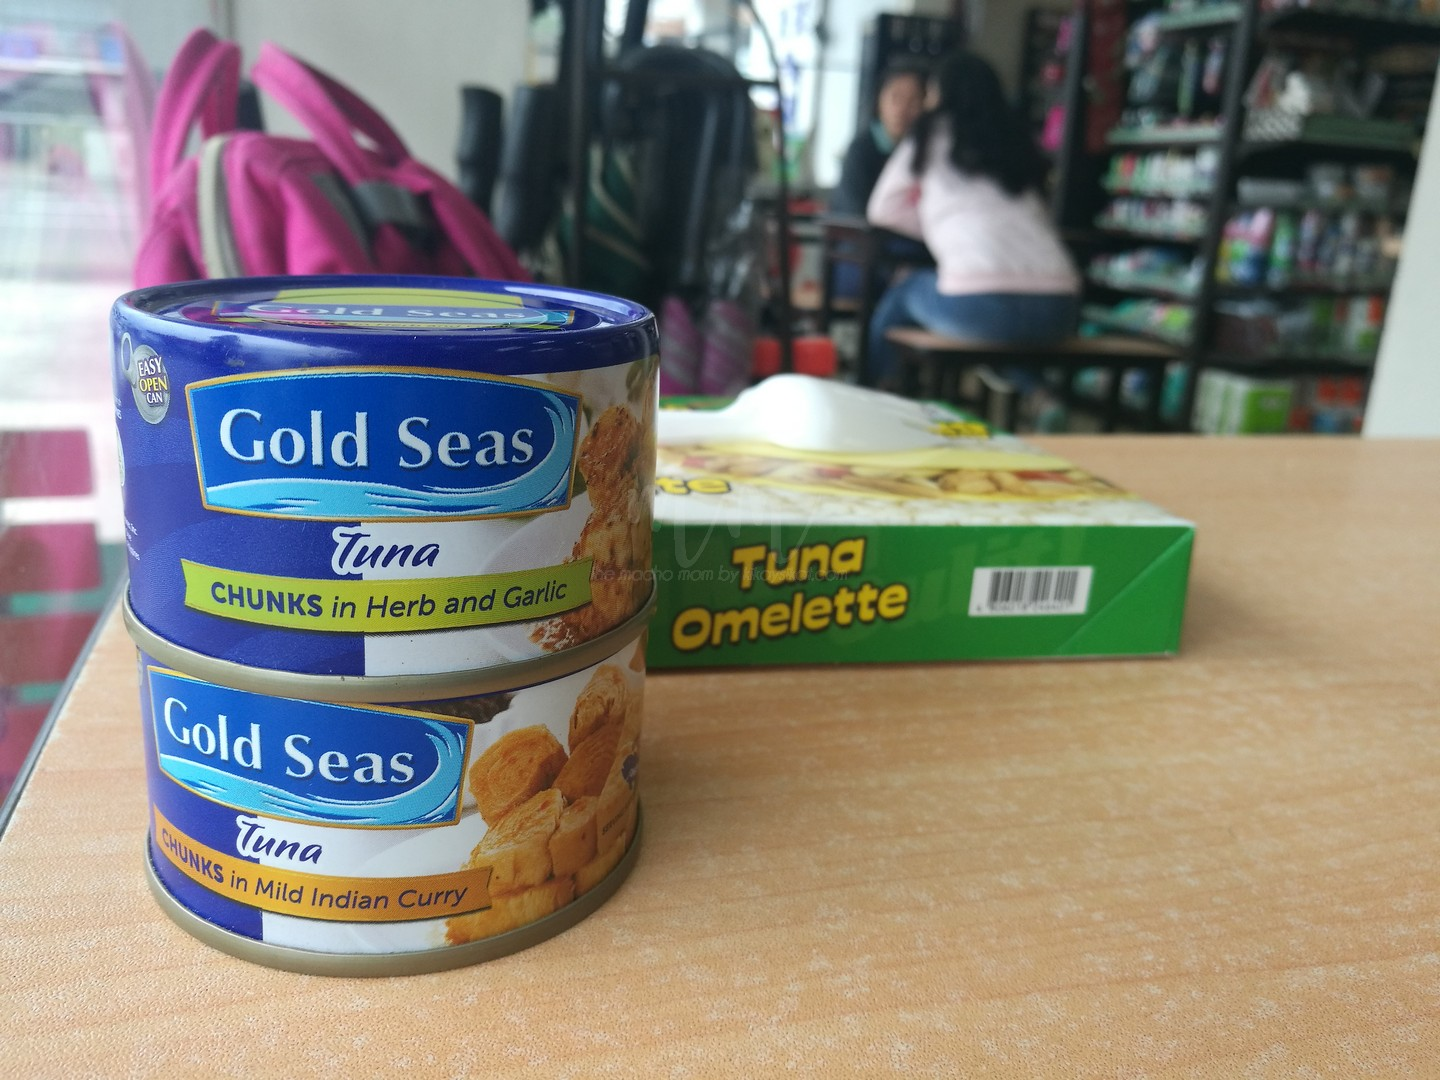 gold seas tuna hit protein macros